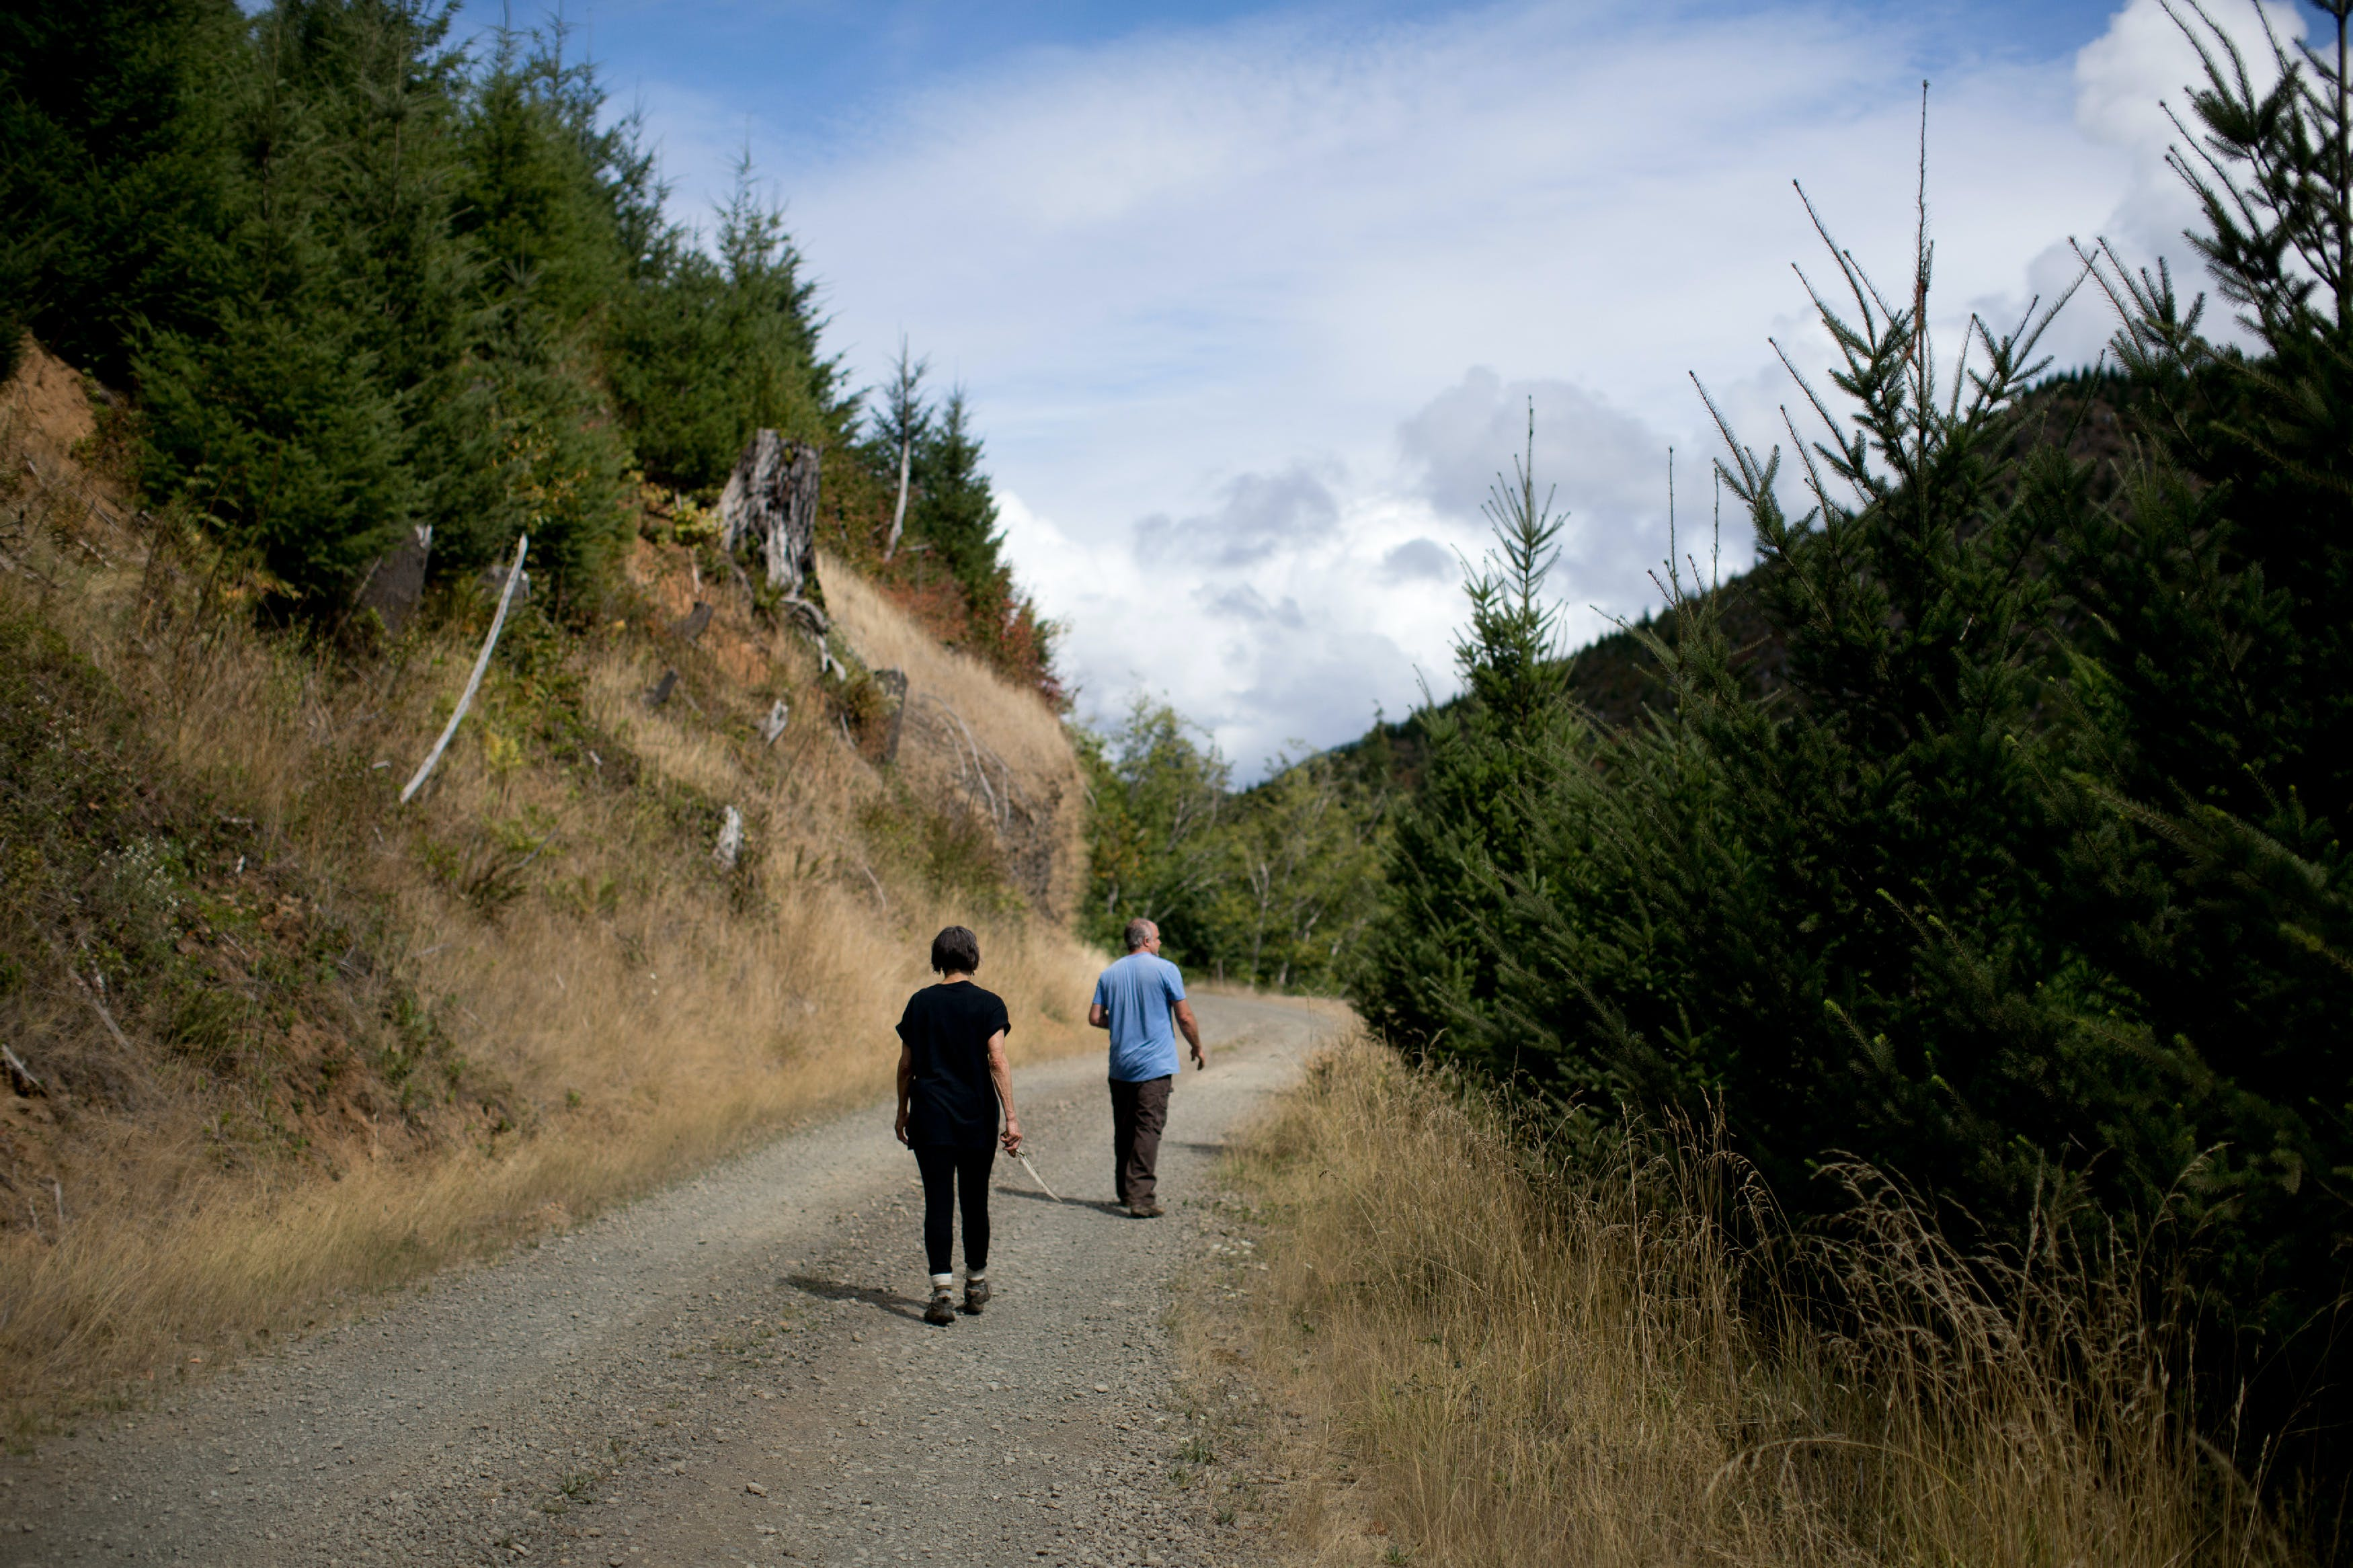 OREGON COAST, OR - SEPTEMBER 8: Barbara Davis and Rio Davidson walk along a logging road on land owned by Weyerhaeuser along the Oregon coast mountains. September 8, 2018 (Photo by Beth Nakamura For The Intercept)